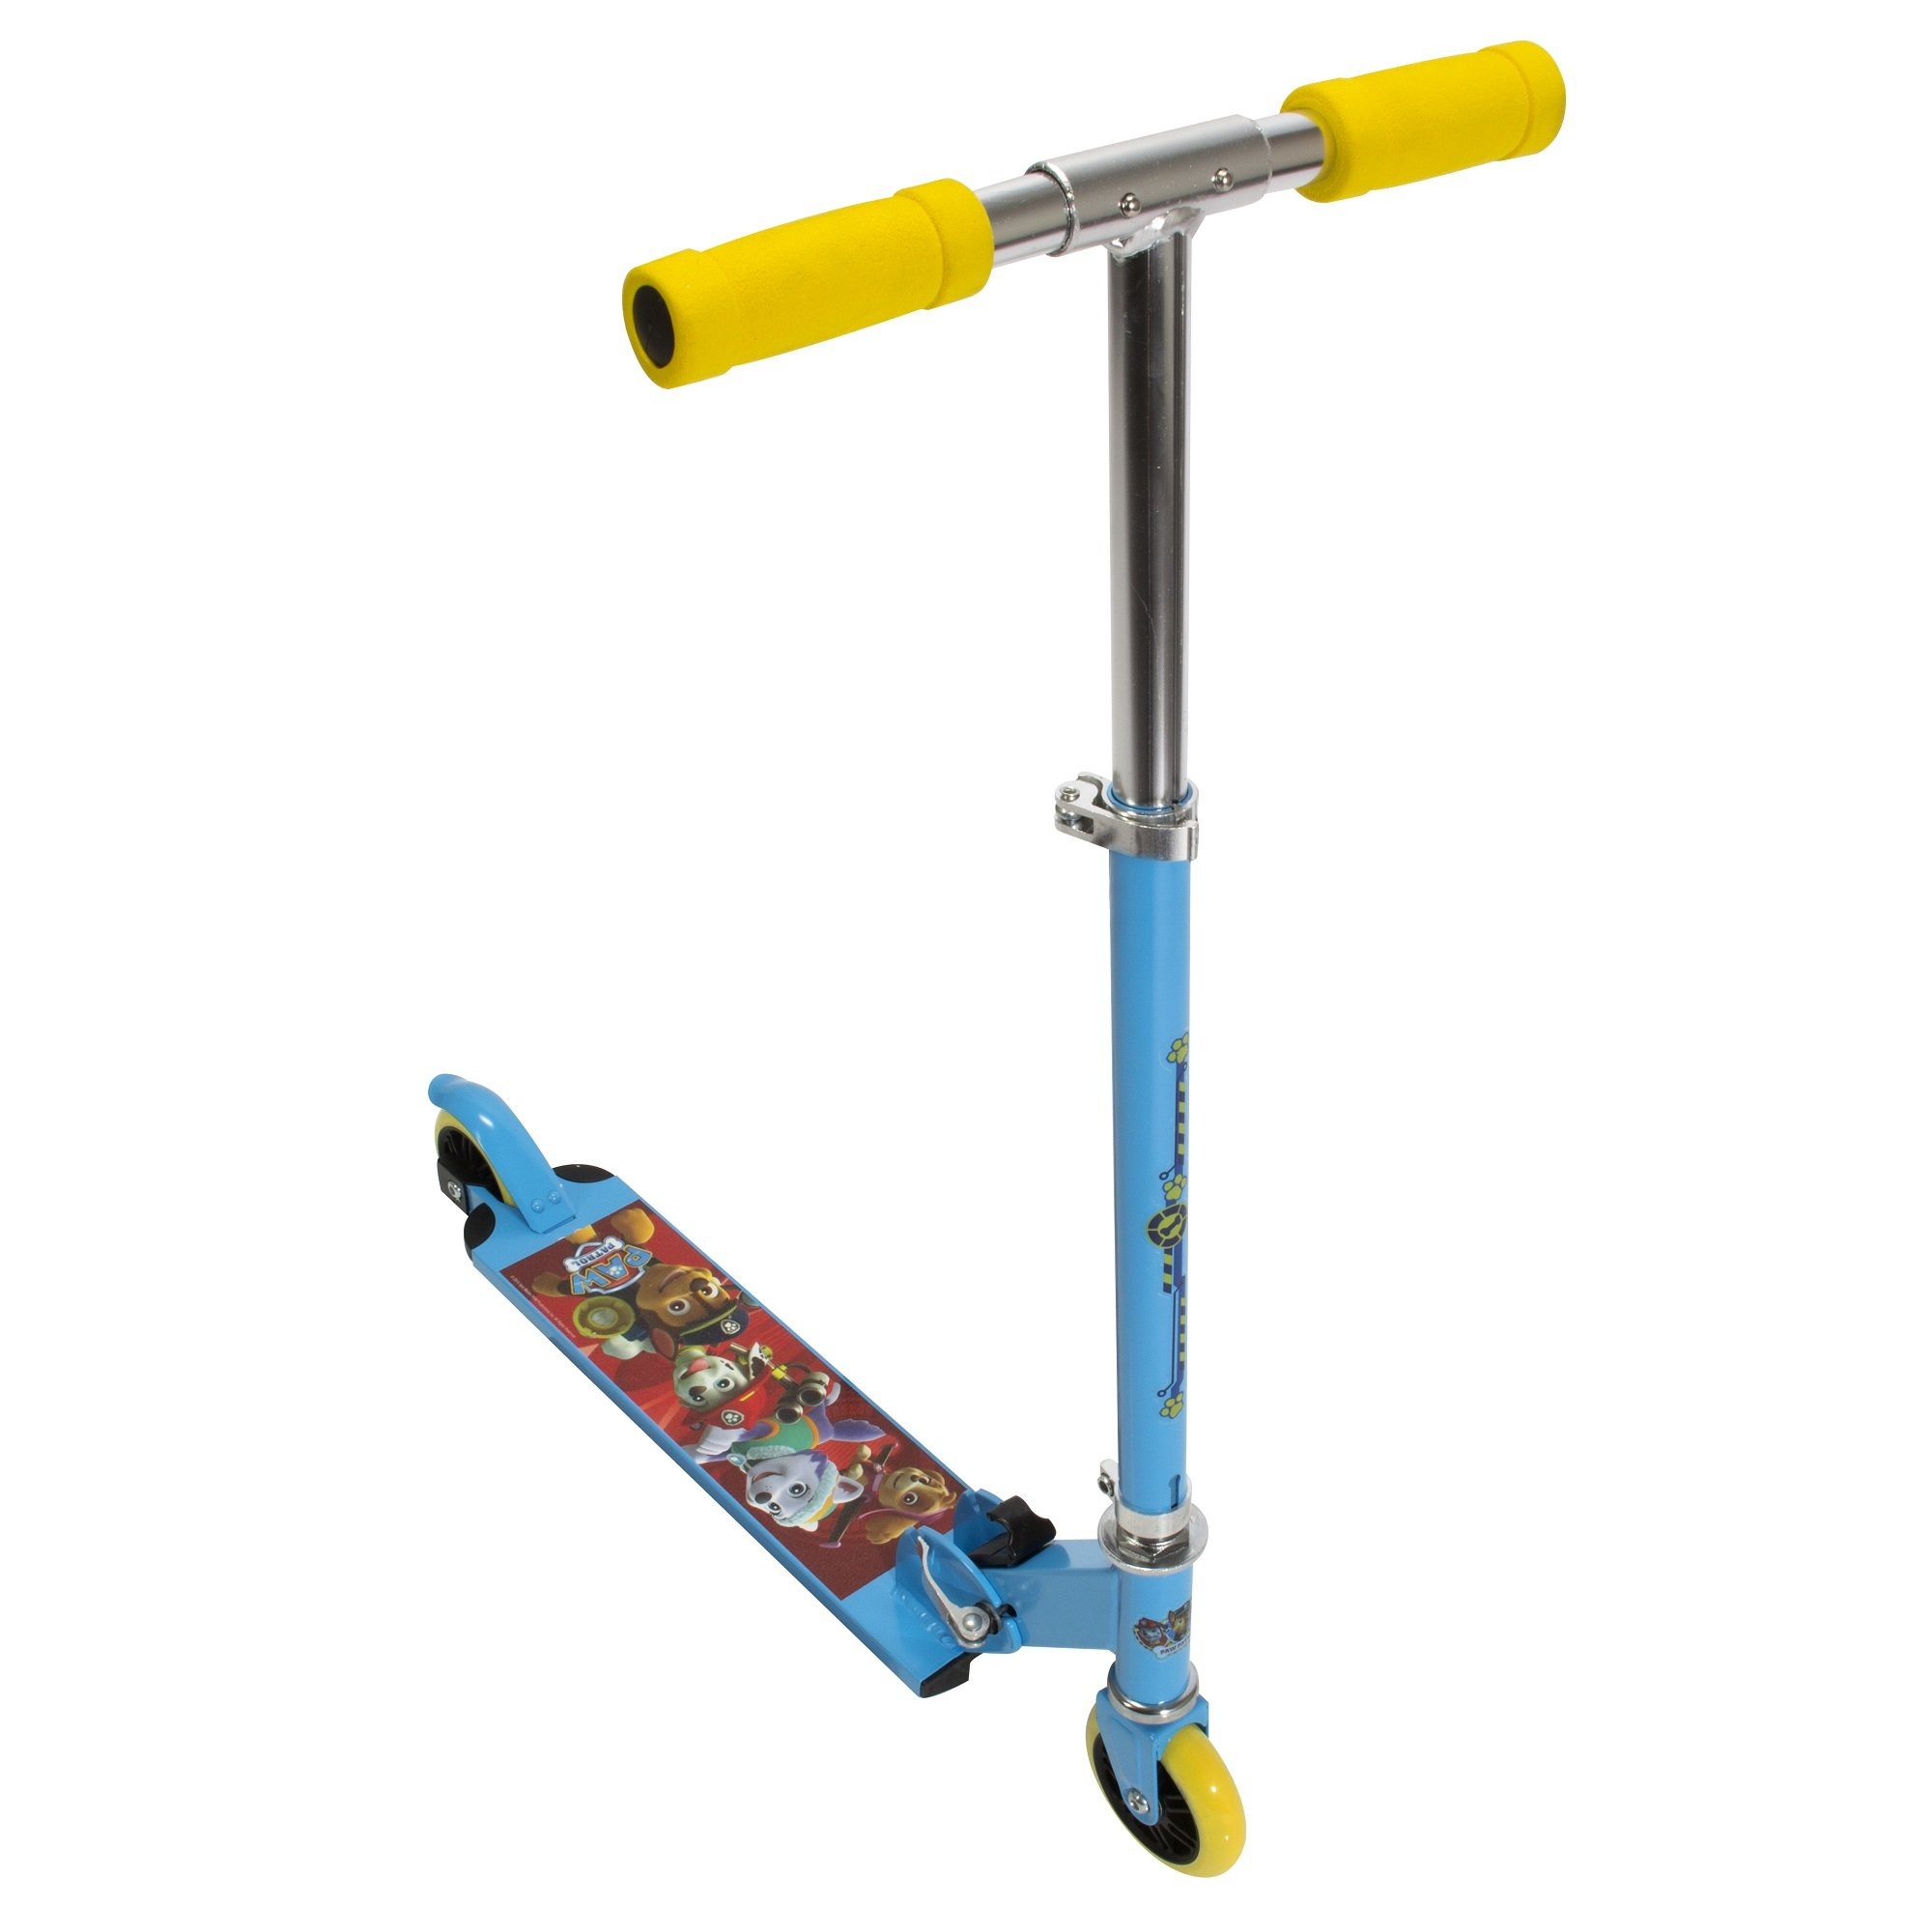 PlayWheels Paw Patrol Aluminum Folding Scooter - Childrens Freestlye Scooter